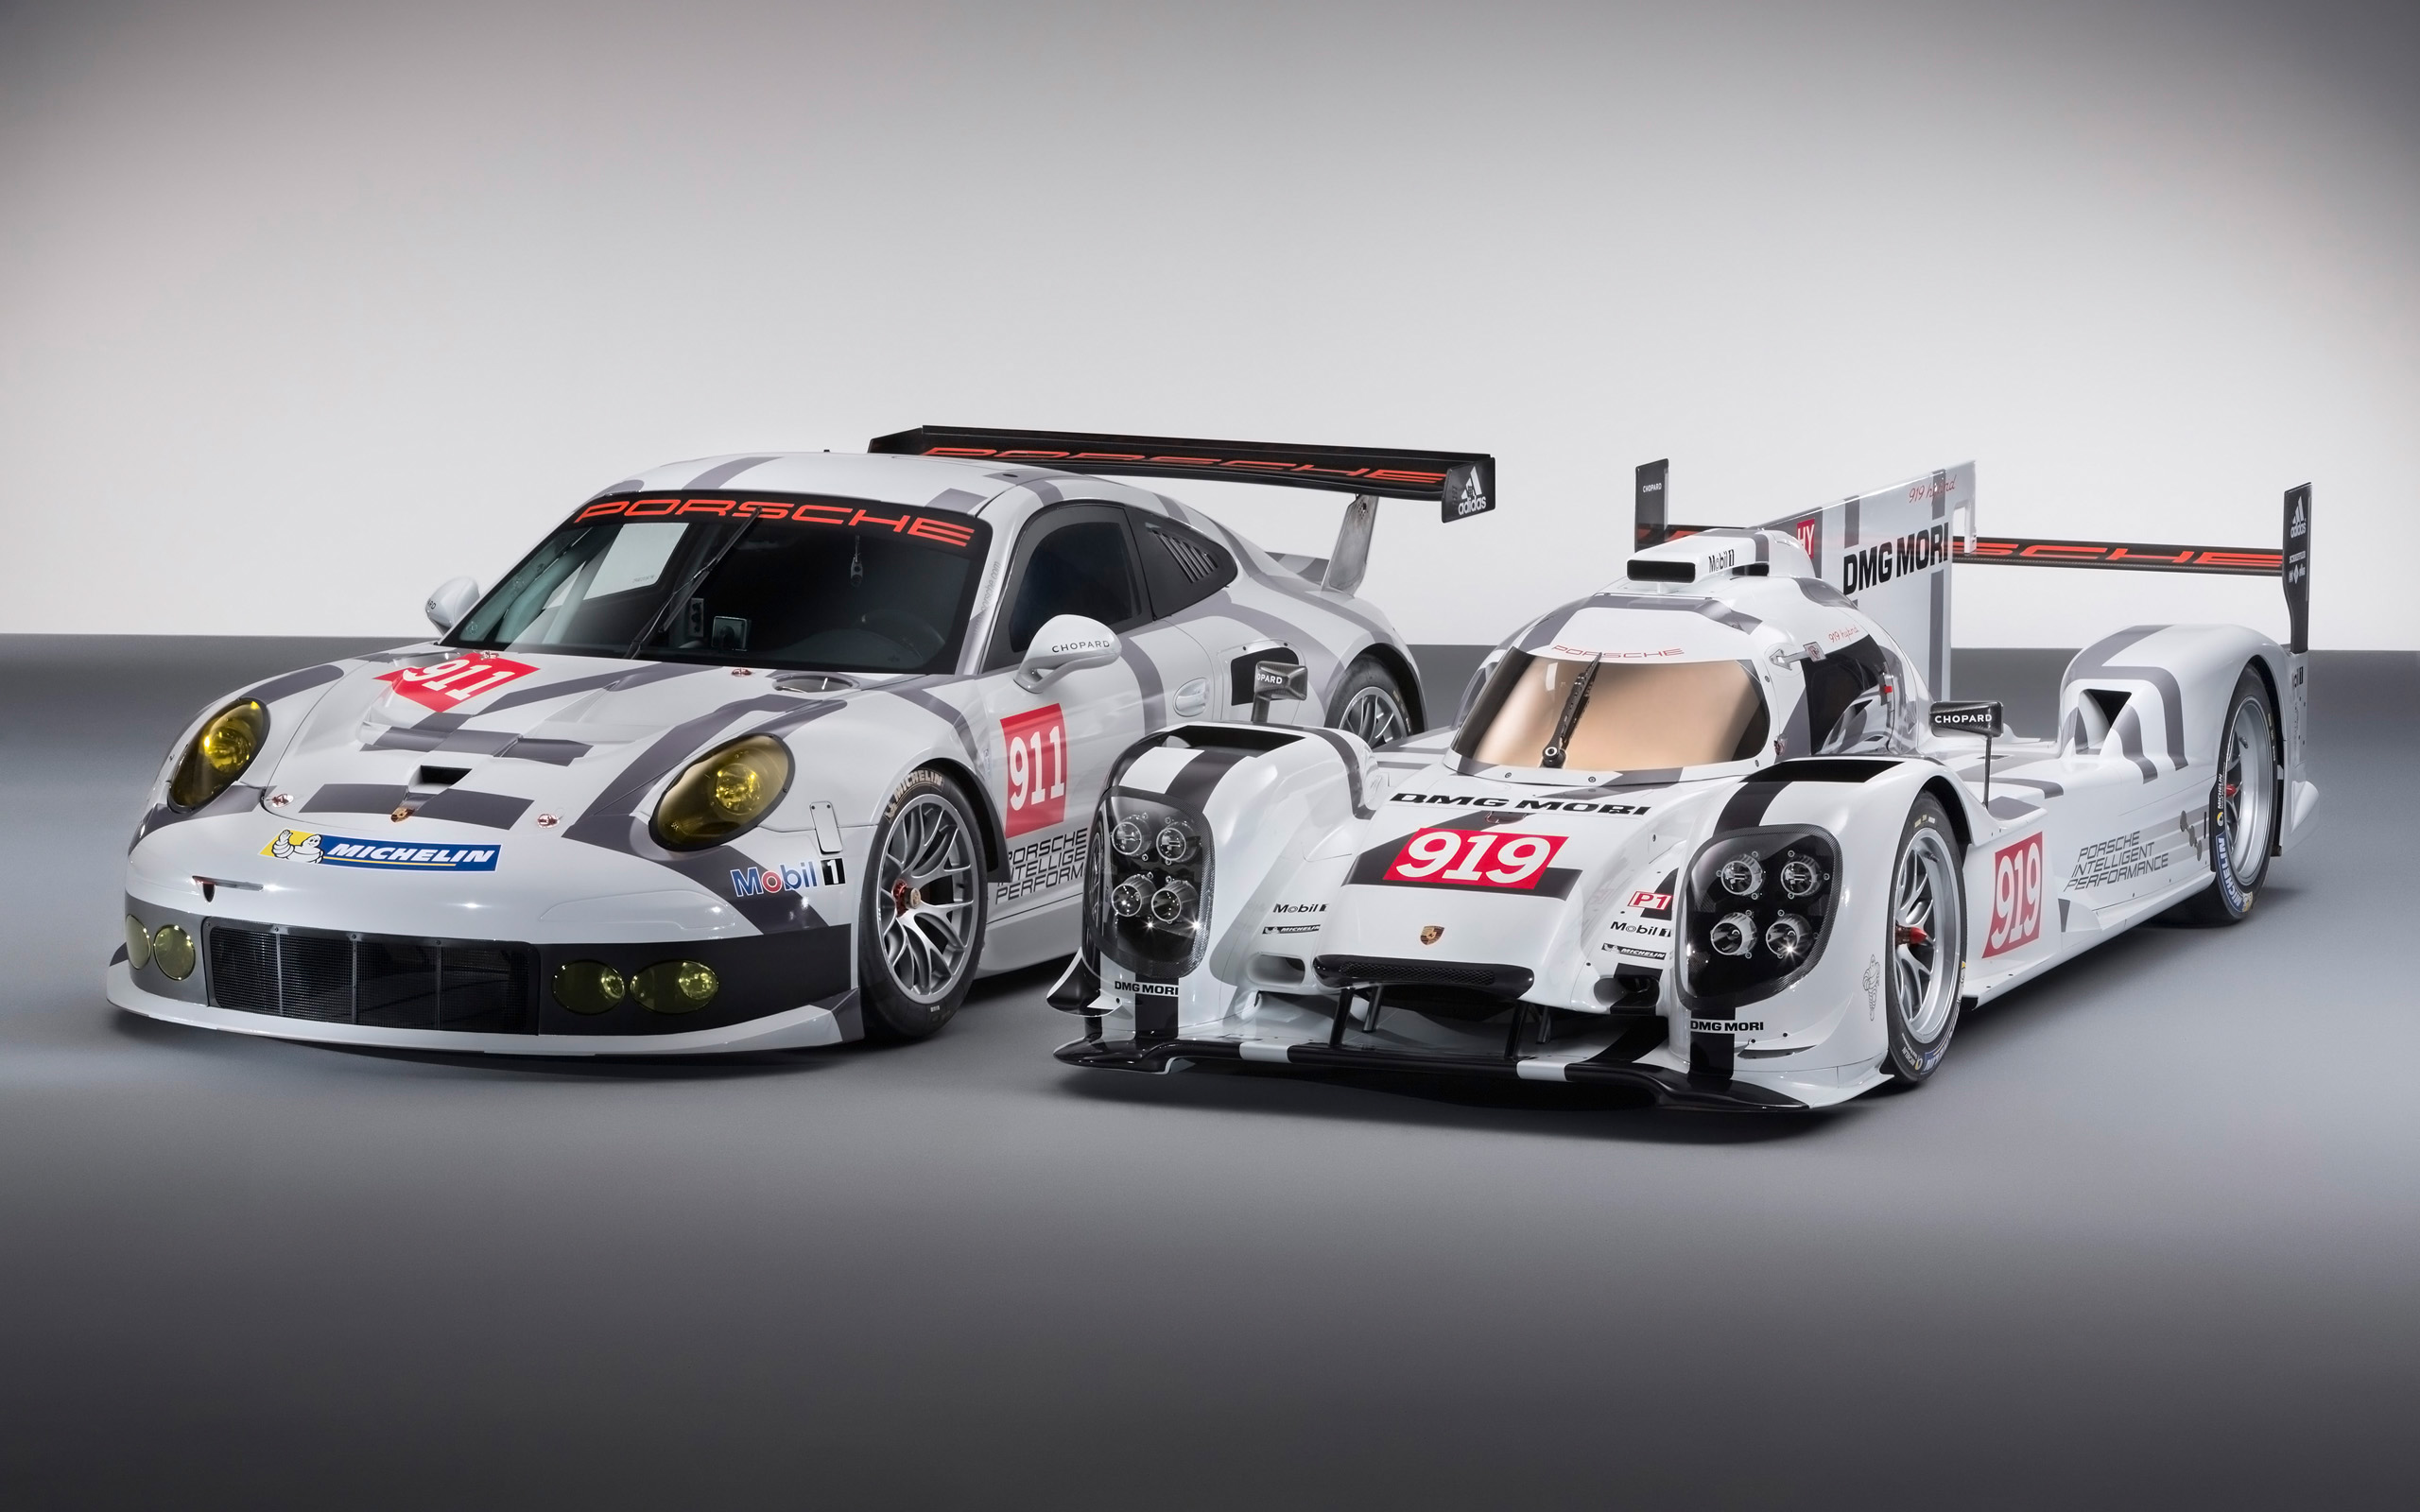 2015 porsche 919 hybrid le mans winner wallpaper hd car wallpapers id 5448. Black Bedroom Furniture Sets. Home Design Ideas